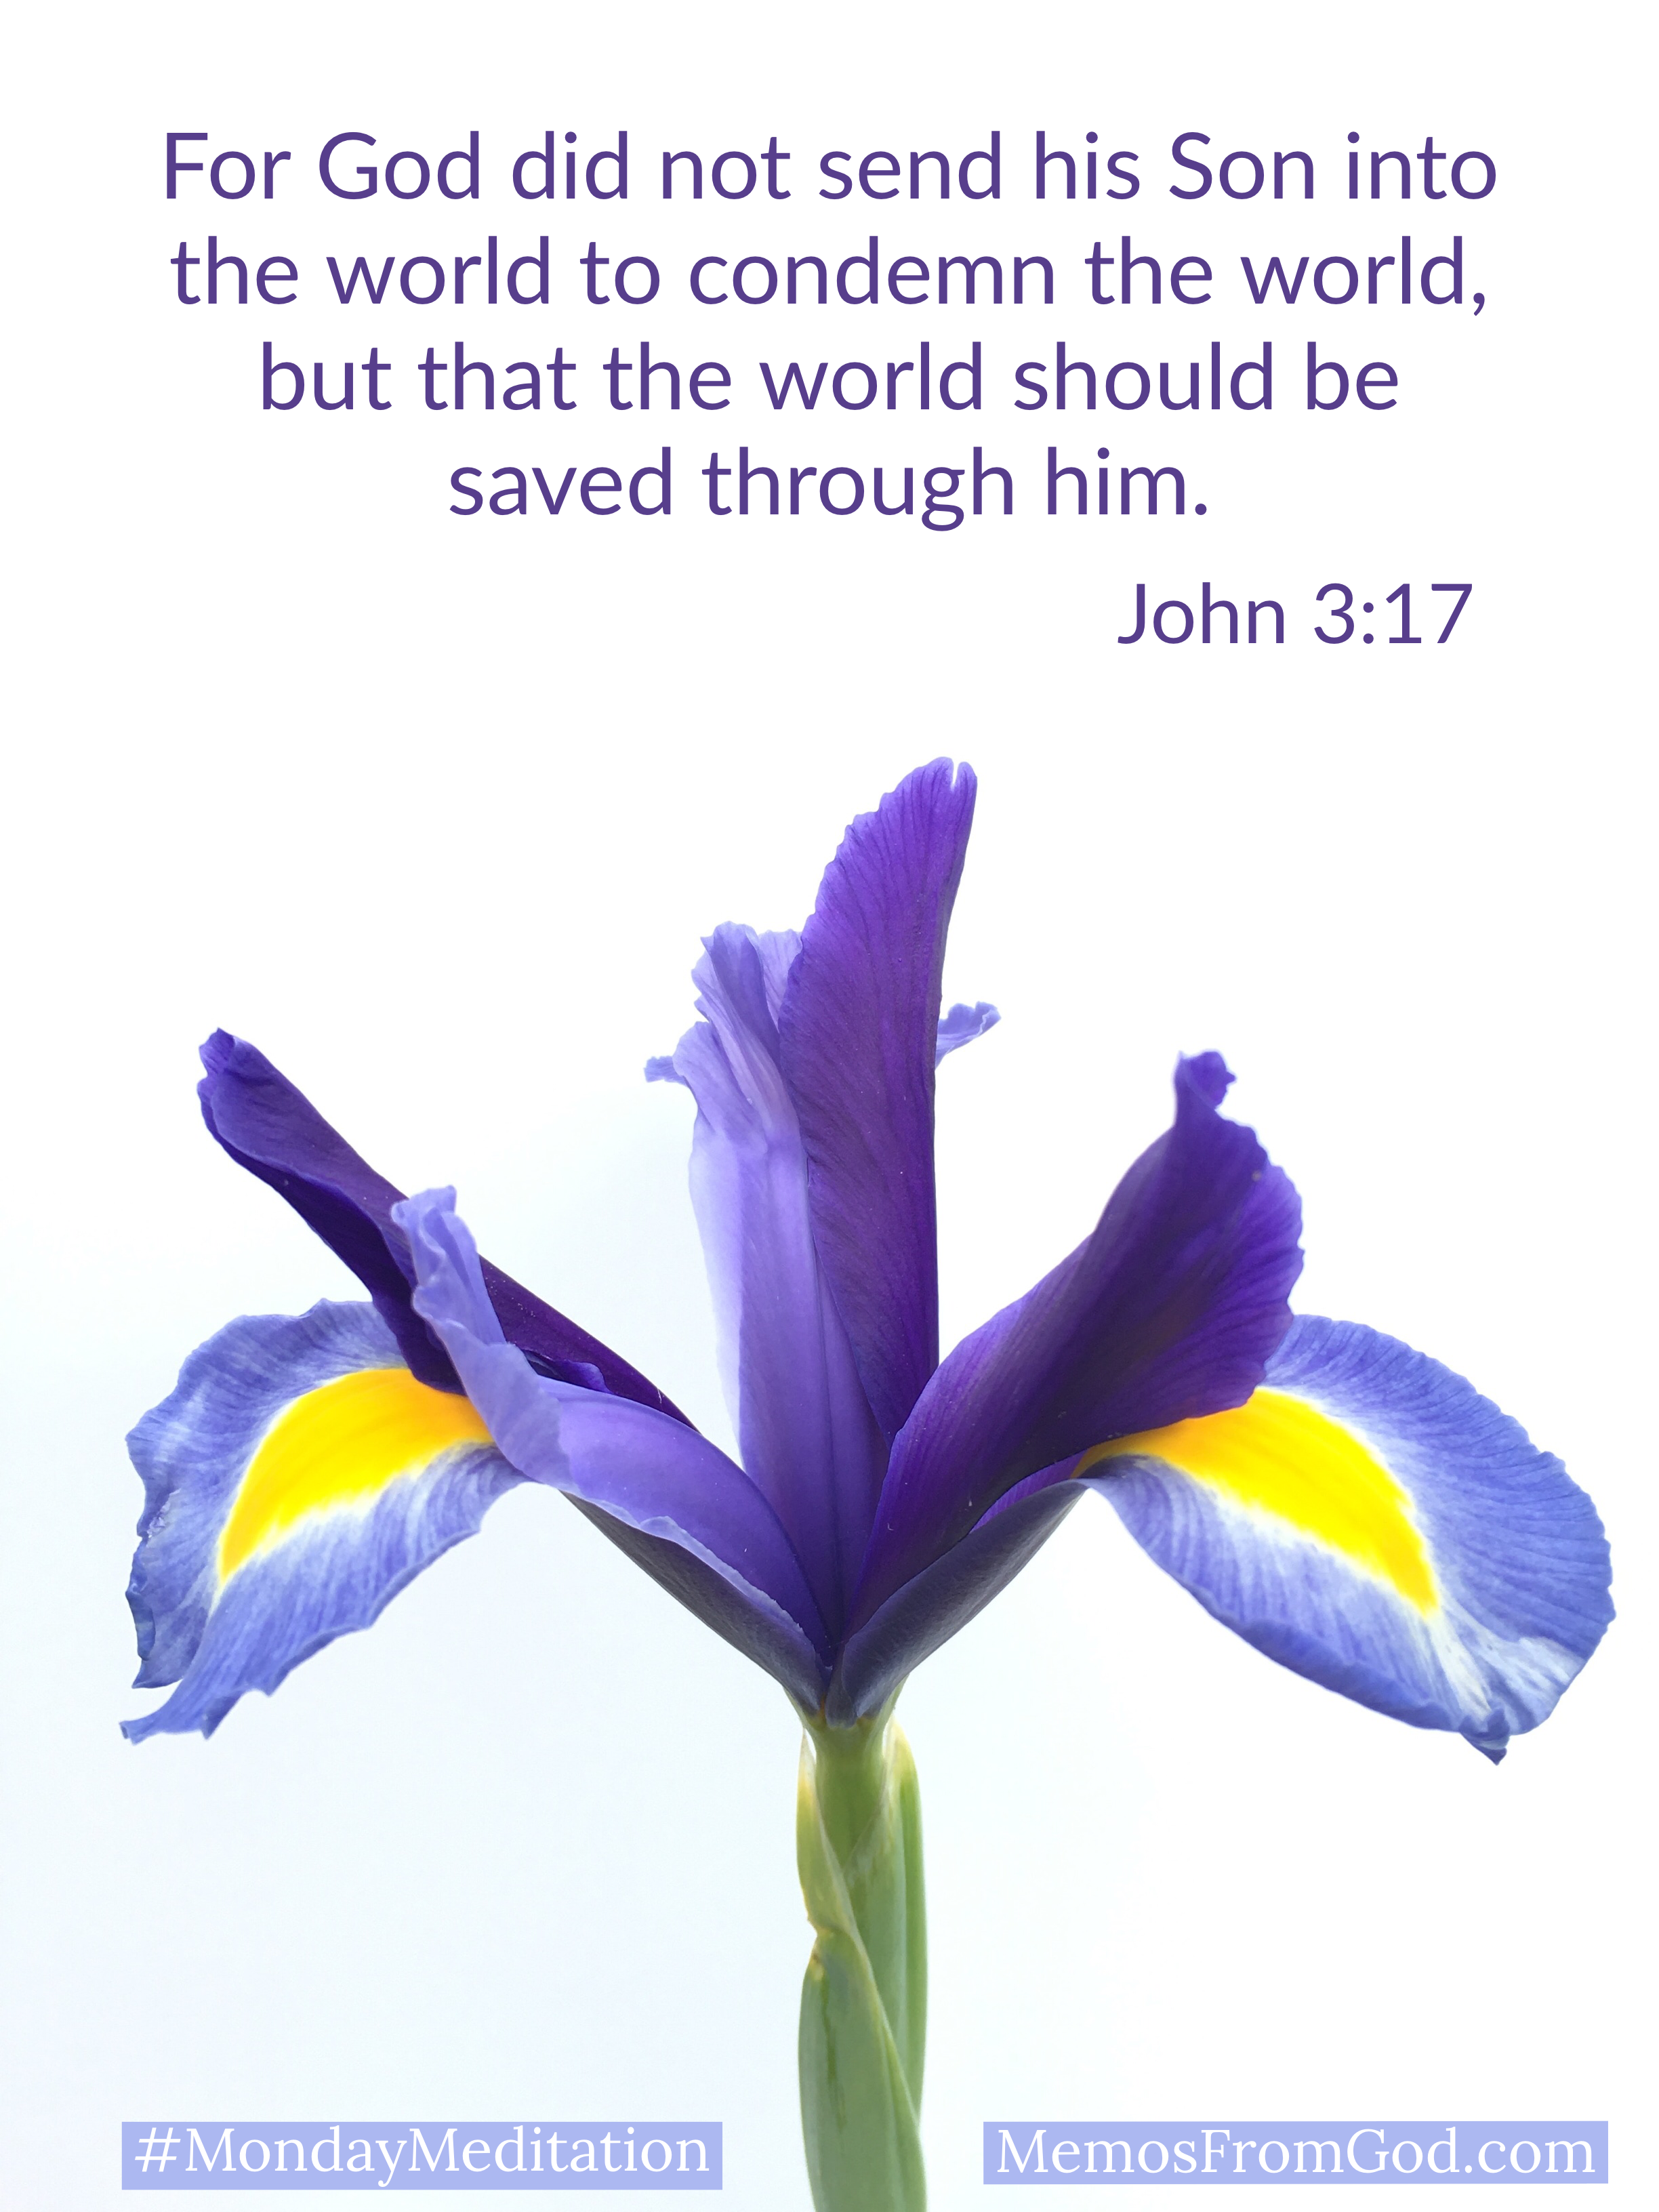 A single purple iris on a white background. Caption: For God did not send his Son into the world to condemn the world, but that the world should be saved through him. John 3:17